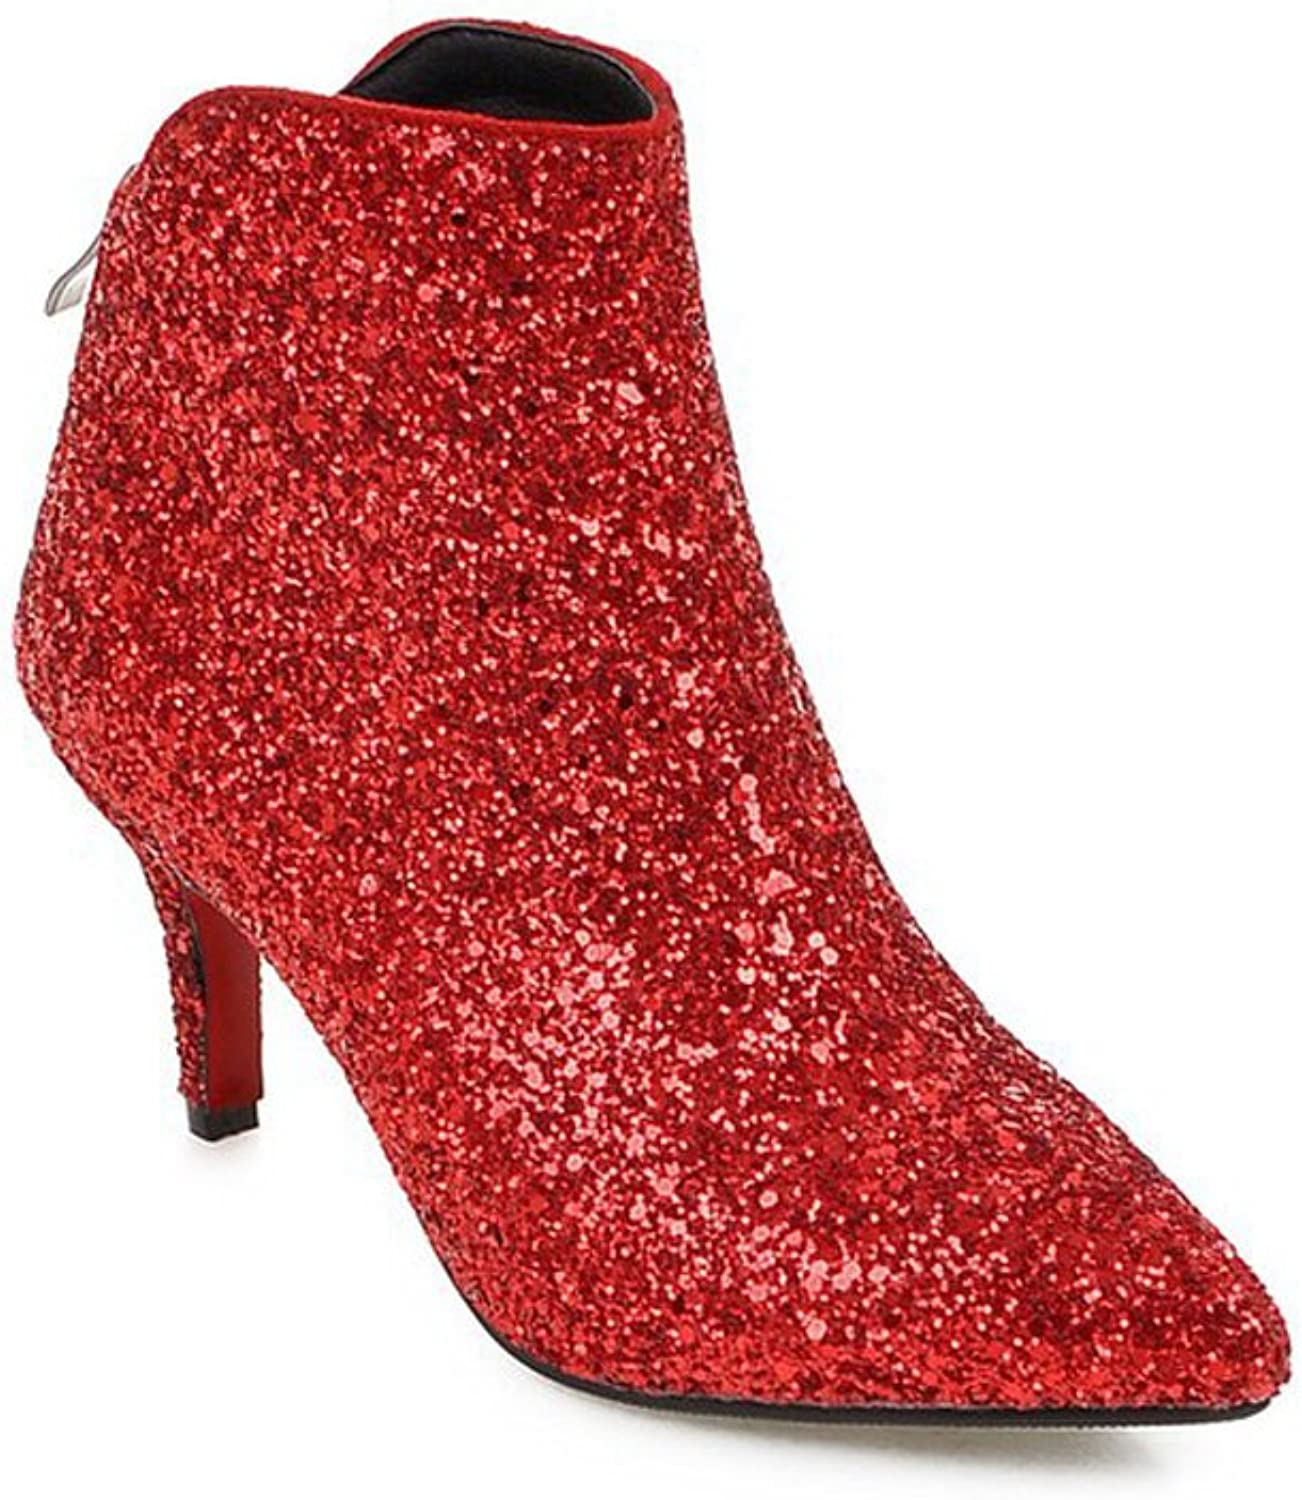 Lucksender Womens Pointed Toe Sparkling Party Dress Pumps shoes